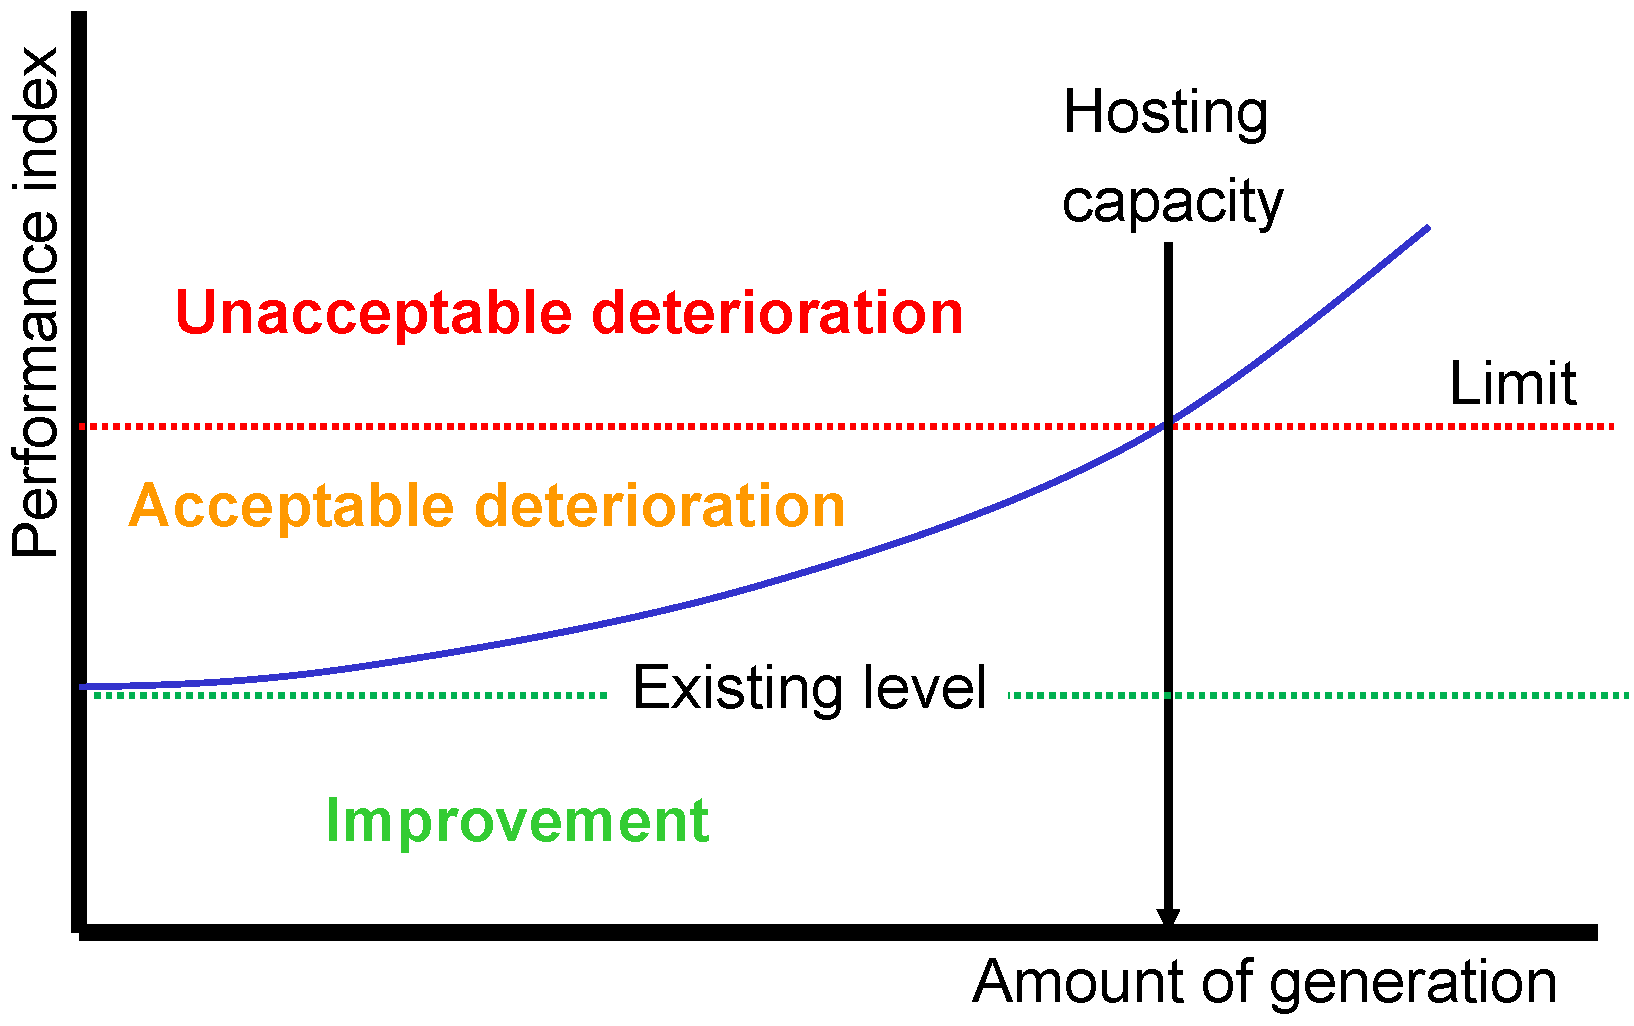 Energies Free Full Text Hosting Capacity Of The Power Grid For Renewable Electricity Production And New Large Consumption Equipment Html